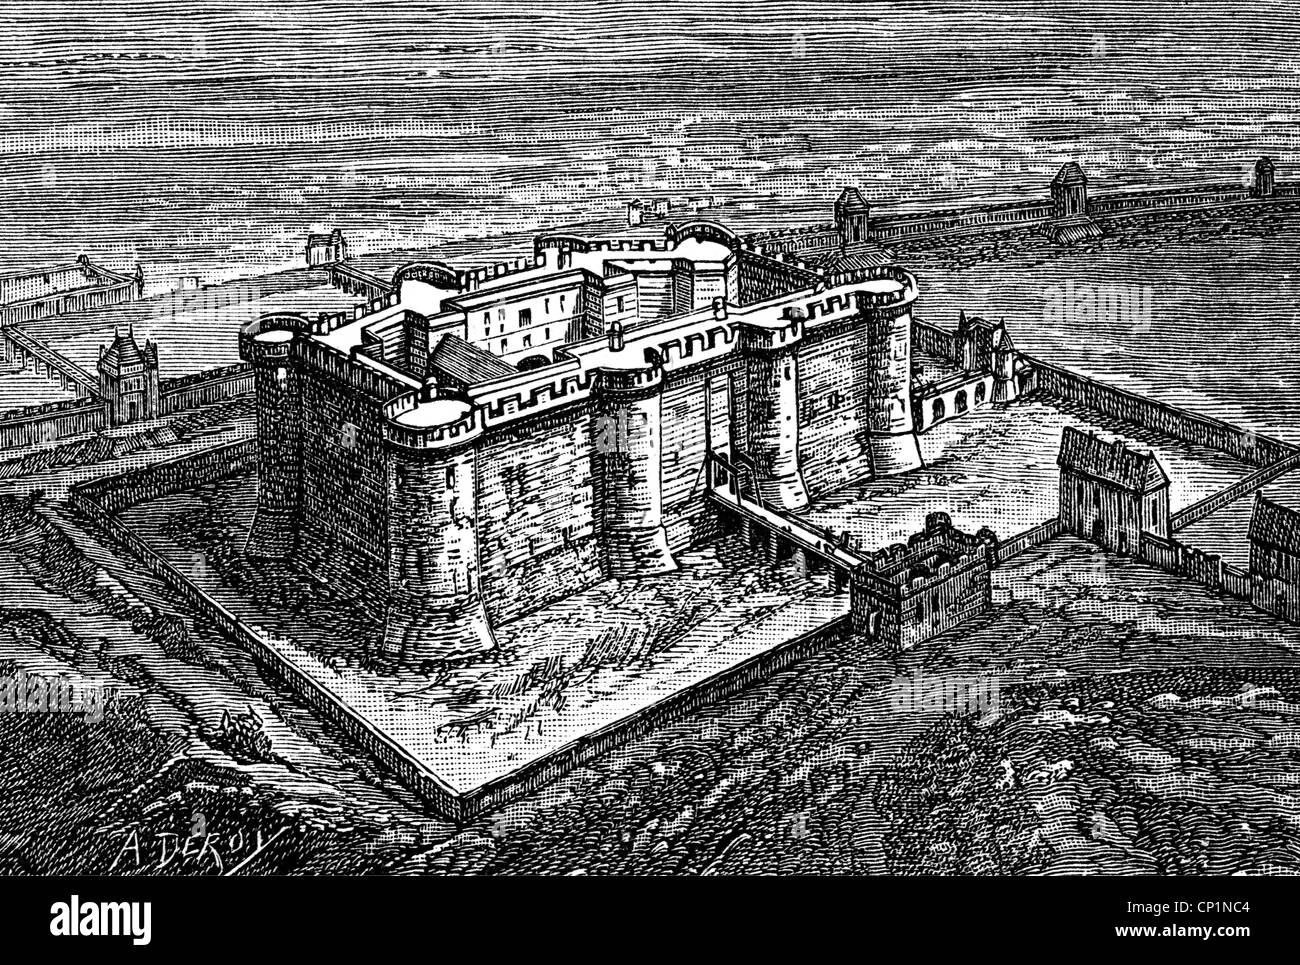 geography / travel, France, Paris, Bastille, exterior view late 18th century, wood engraving, 19th century, Bastion - Stock Image